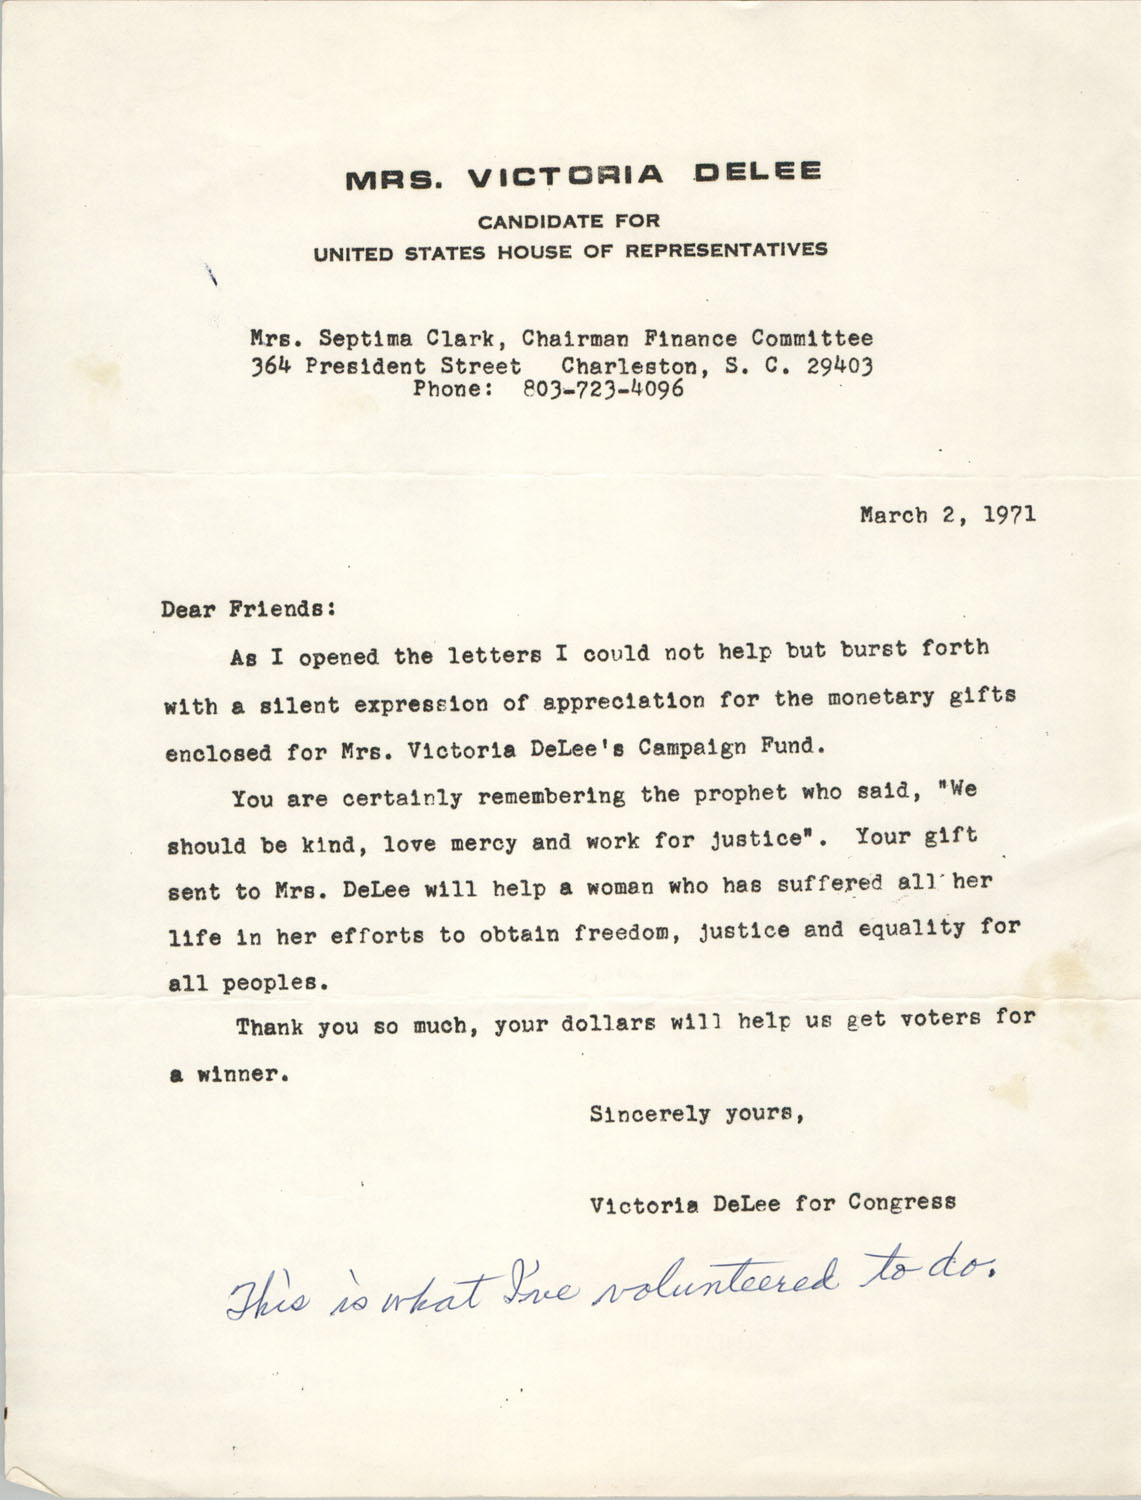 Letter from Victoria DeLee to Septima P. Clark, March 2, 1971